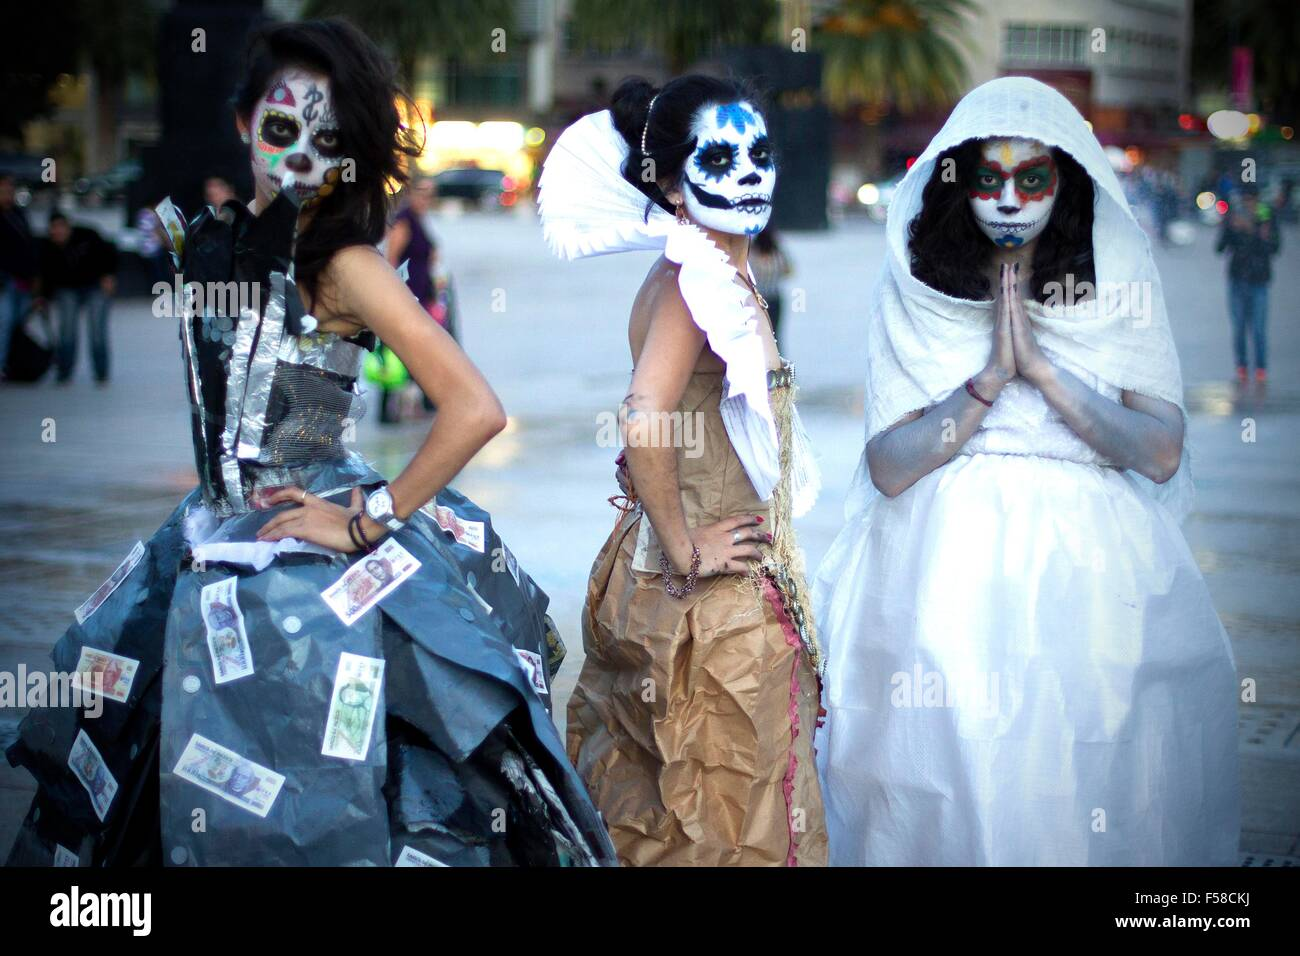 Mexico City Mexico 29th Oct 2015 Art Students Dressed